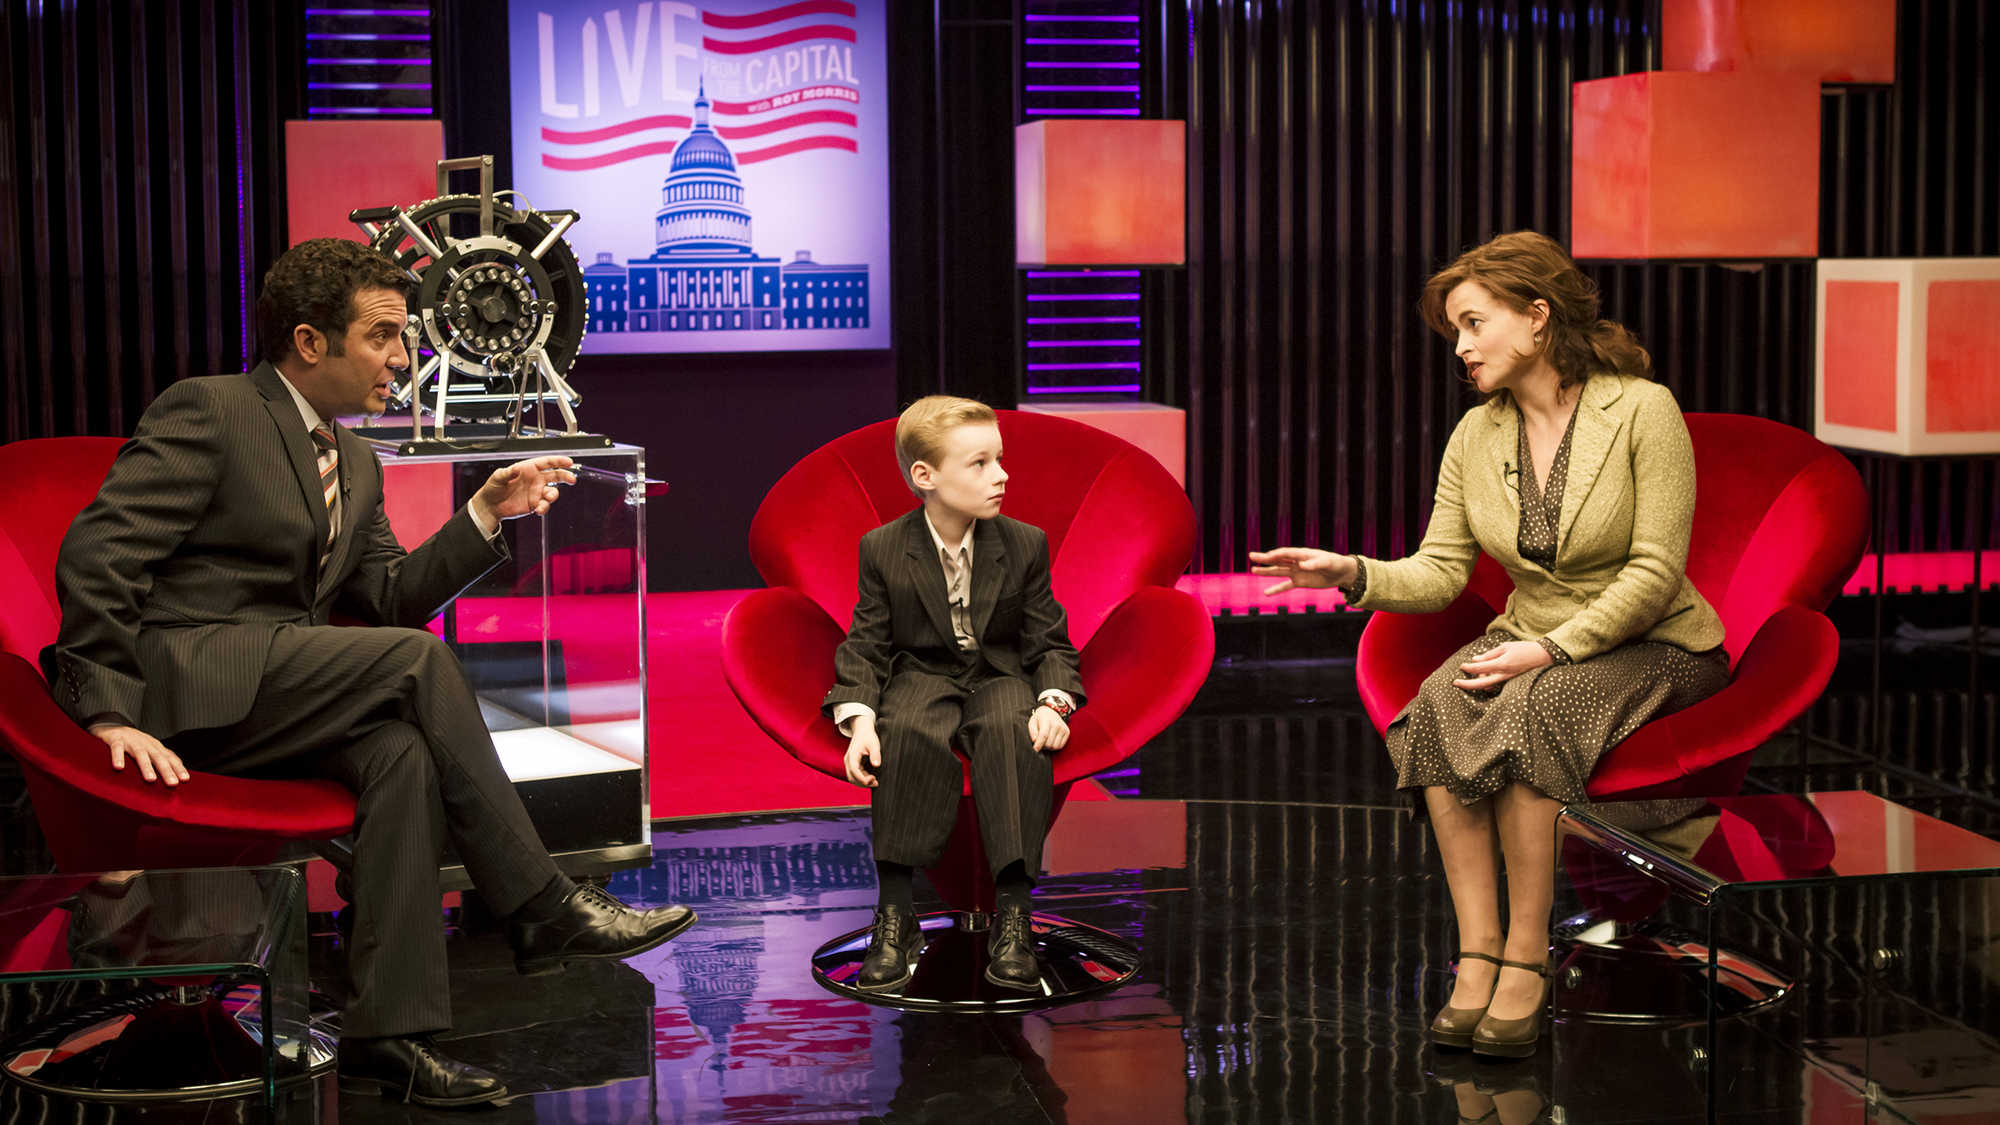 The Young and Prodigious T.S. Spivet 3D (image 6)